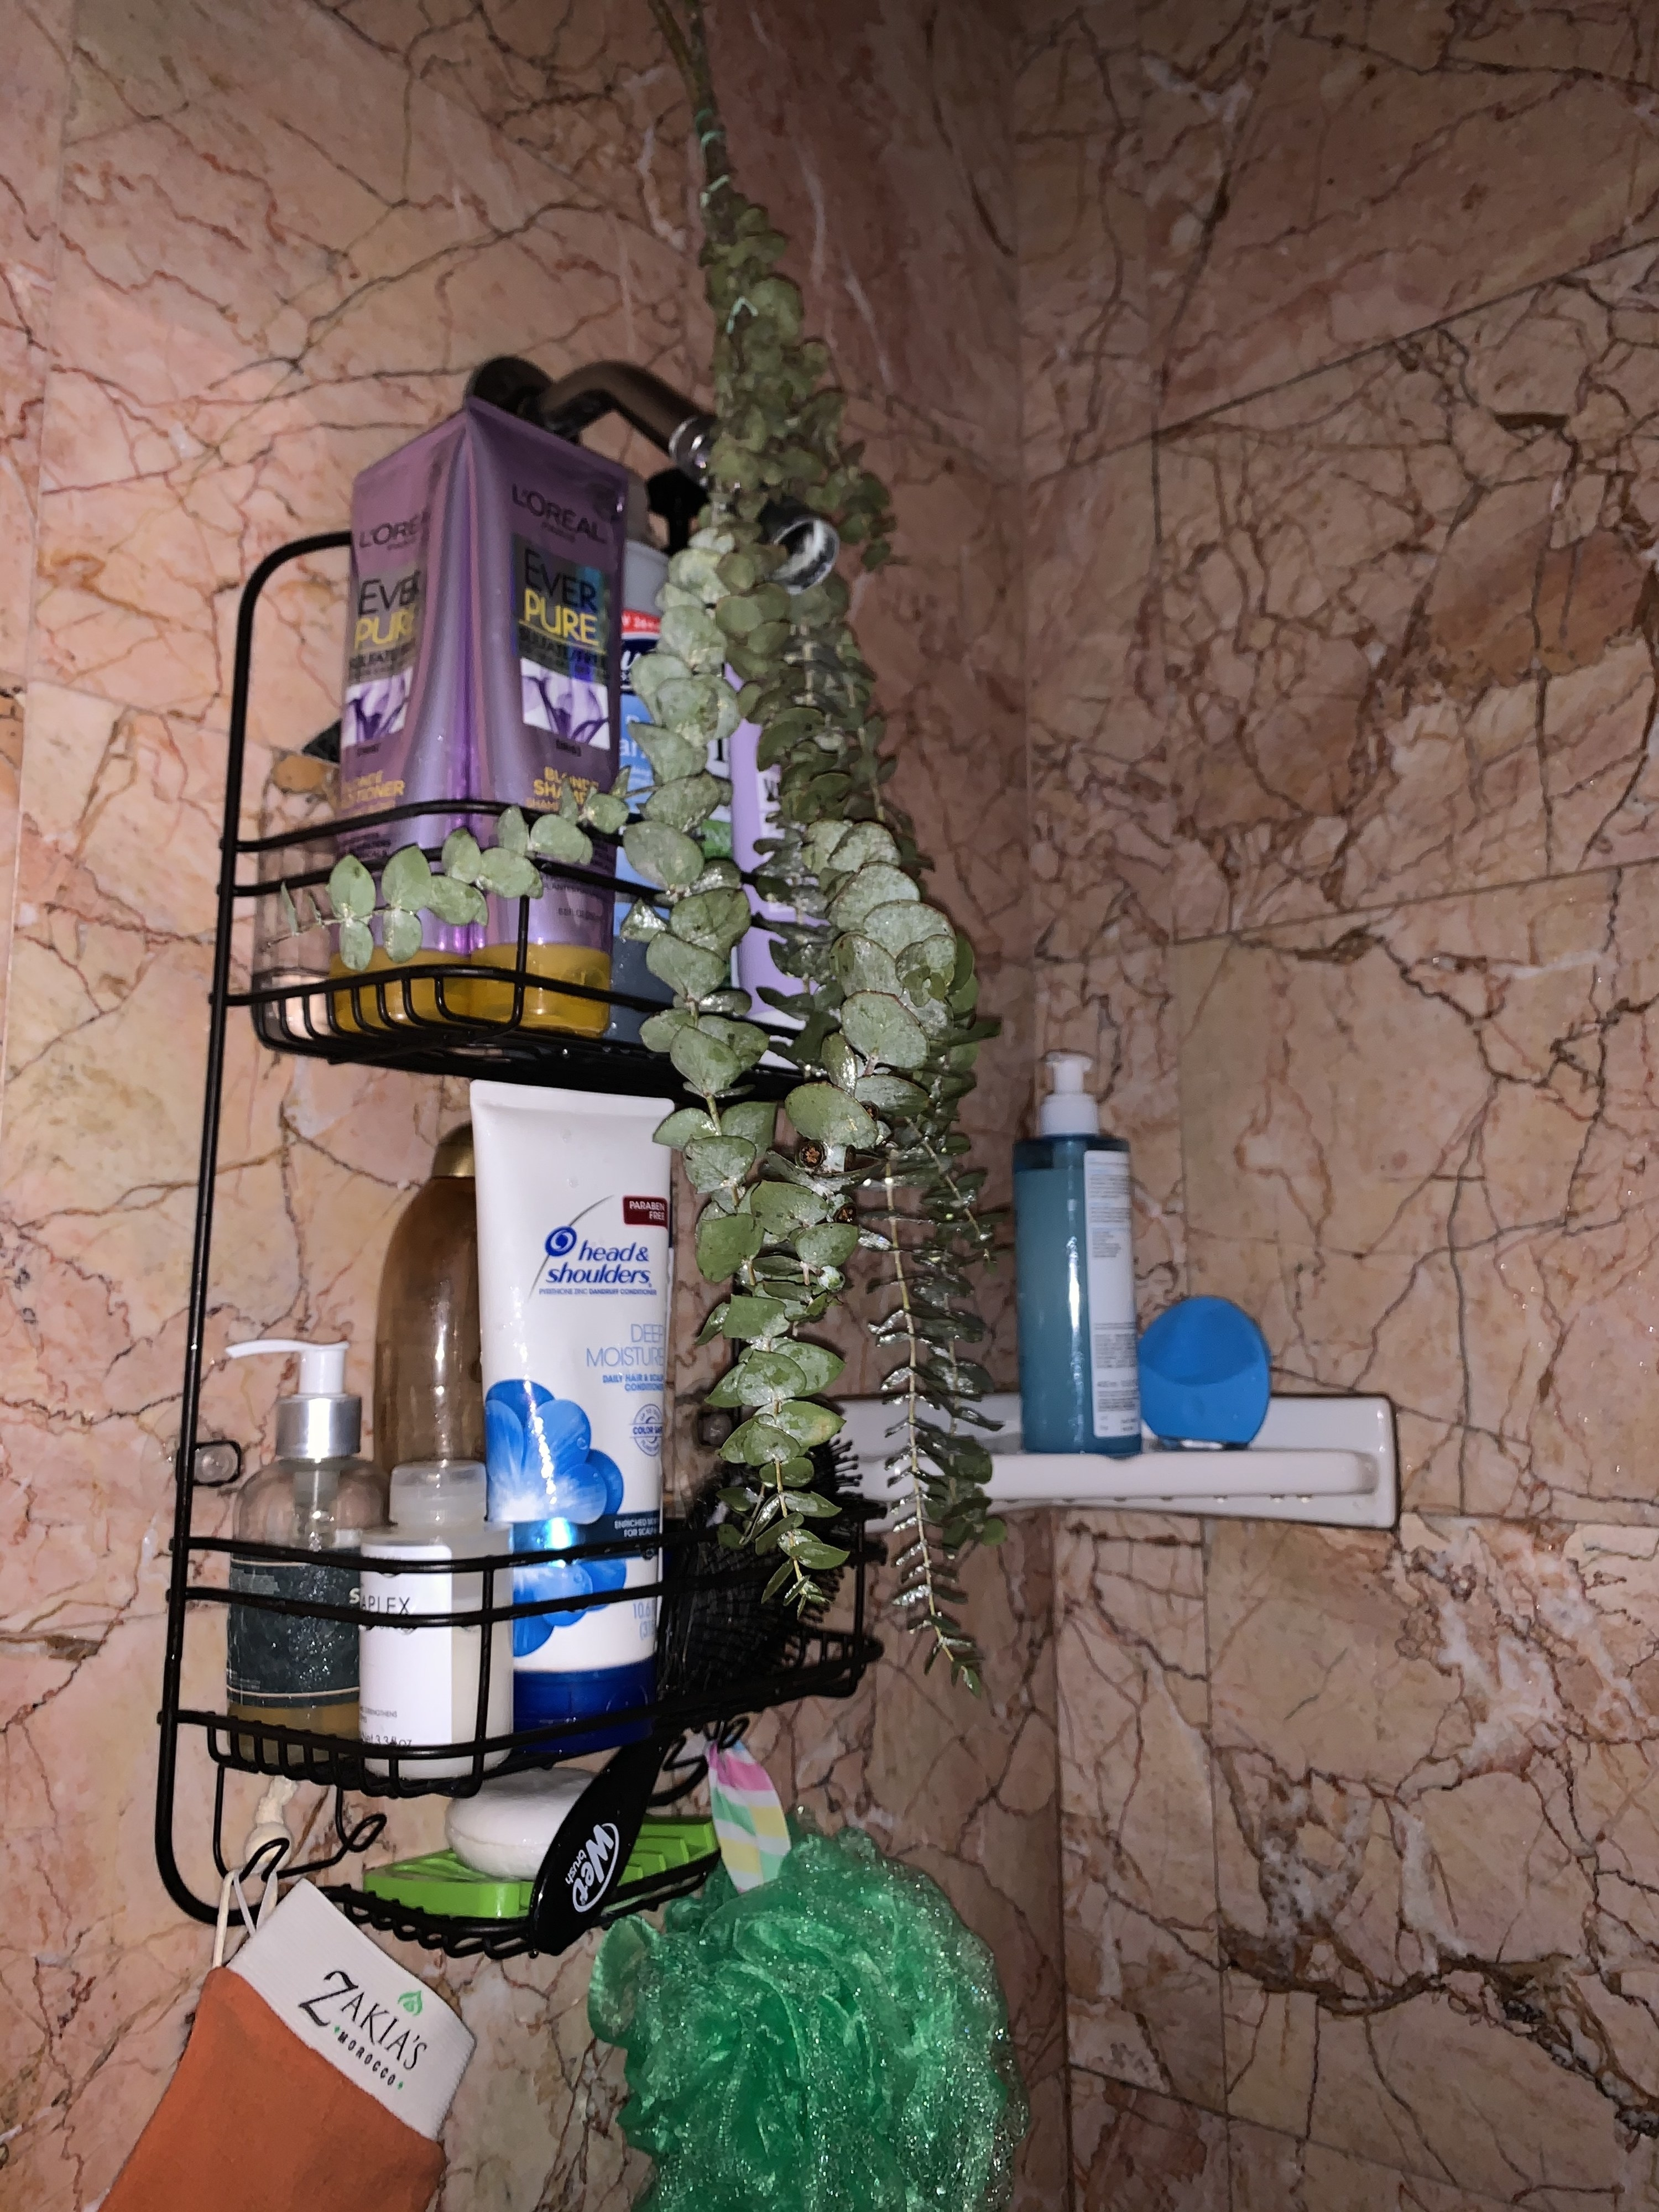 An image of a eucalyptus plant hanging from the author's shower head